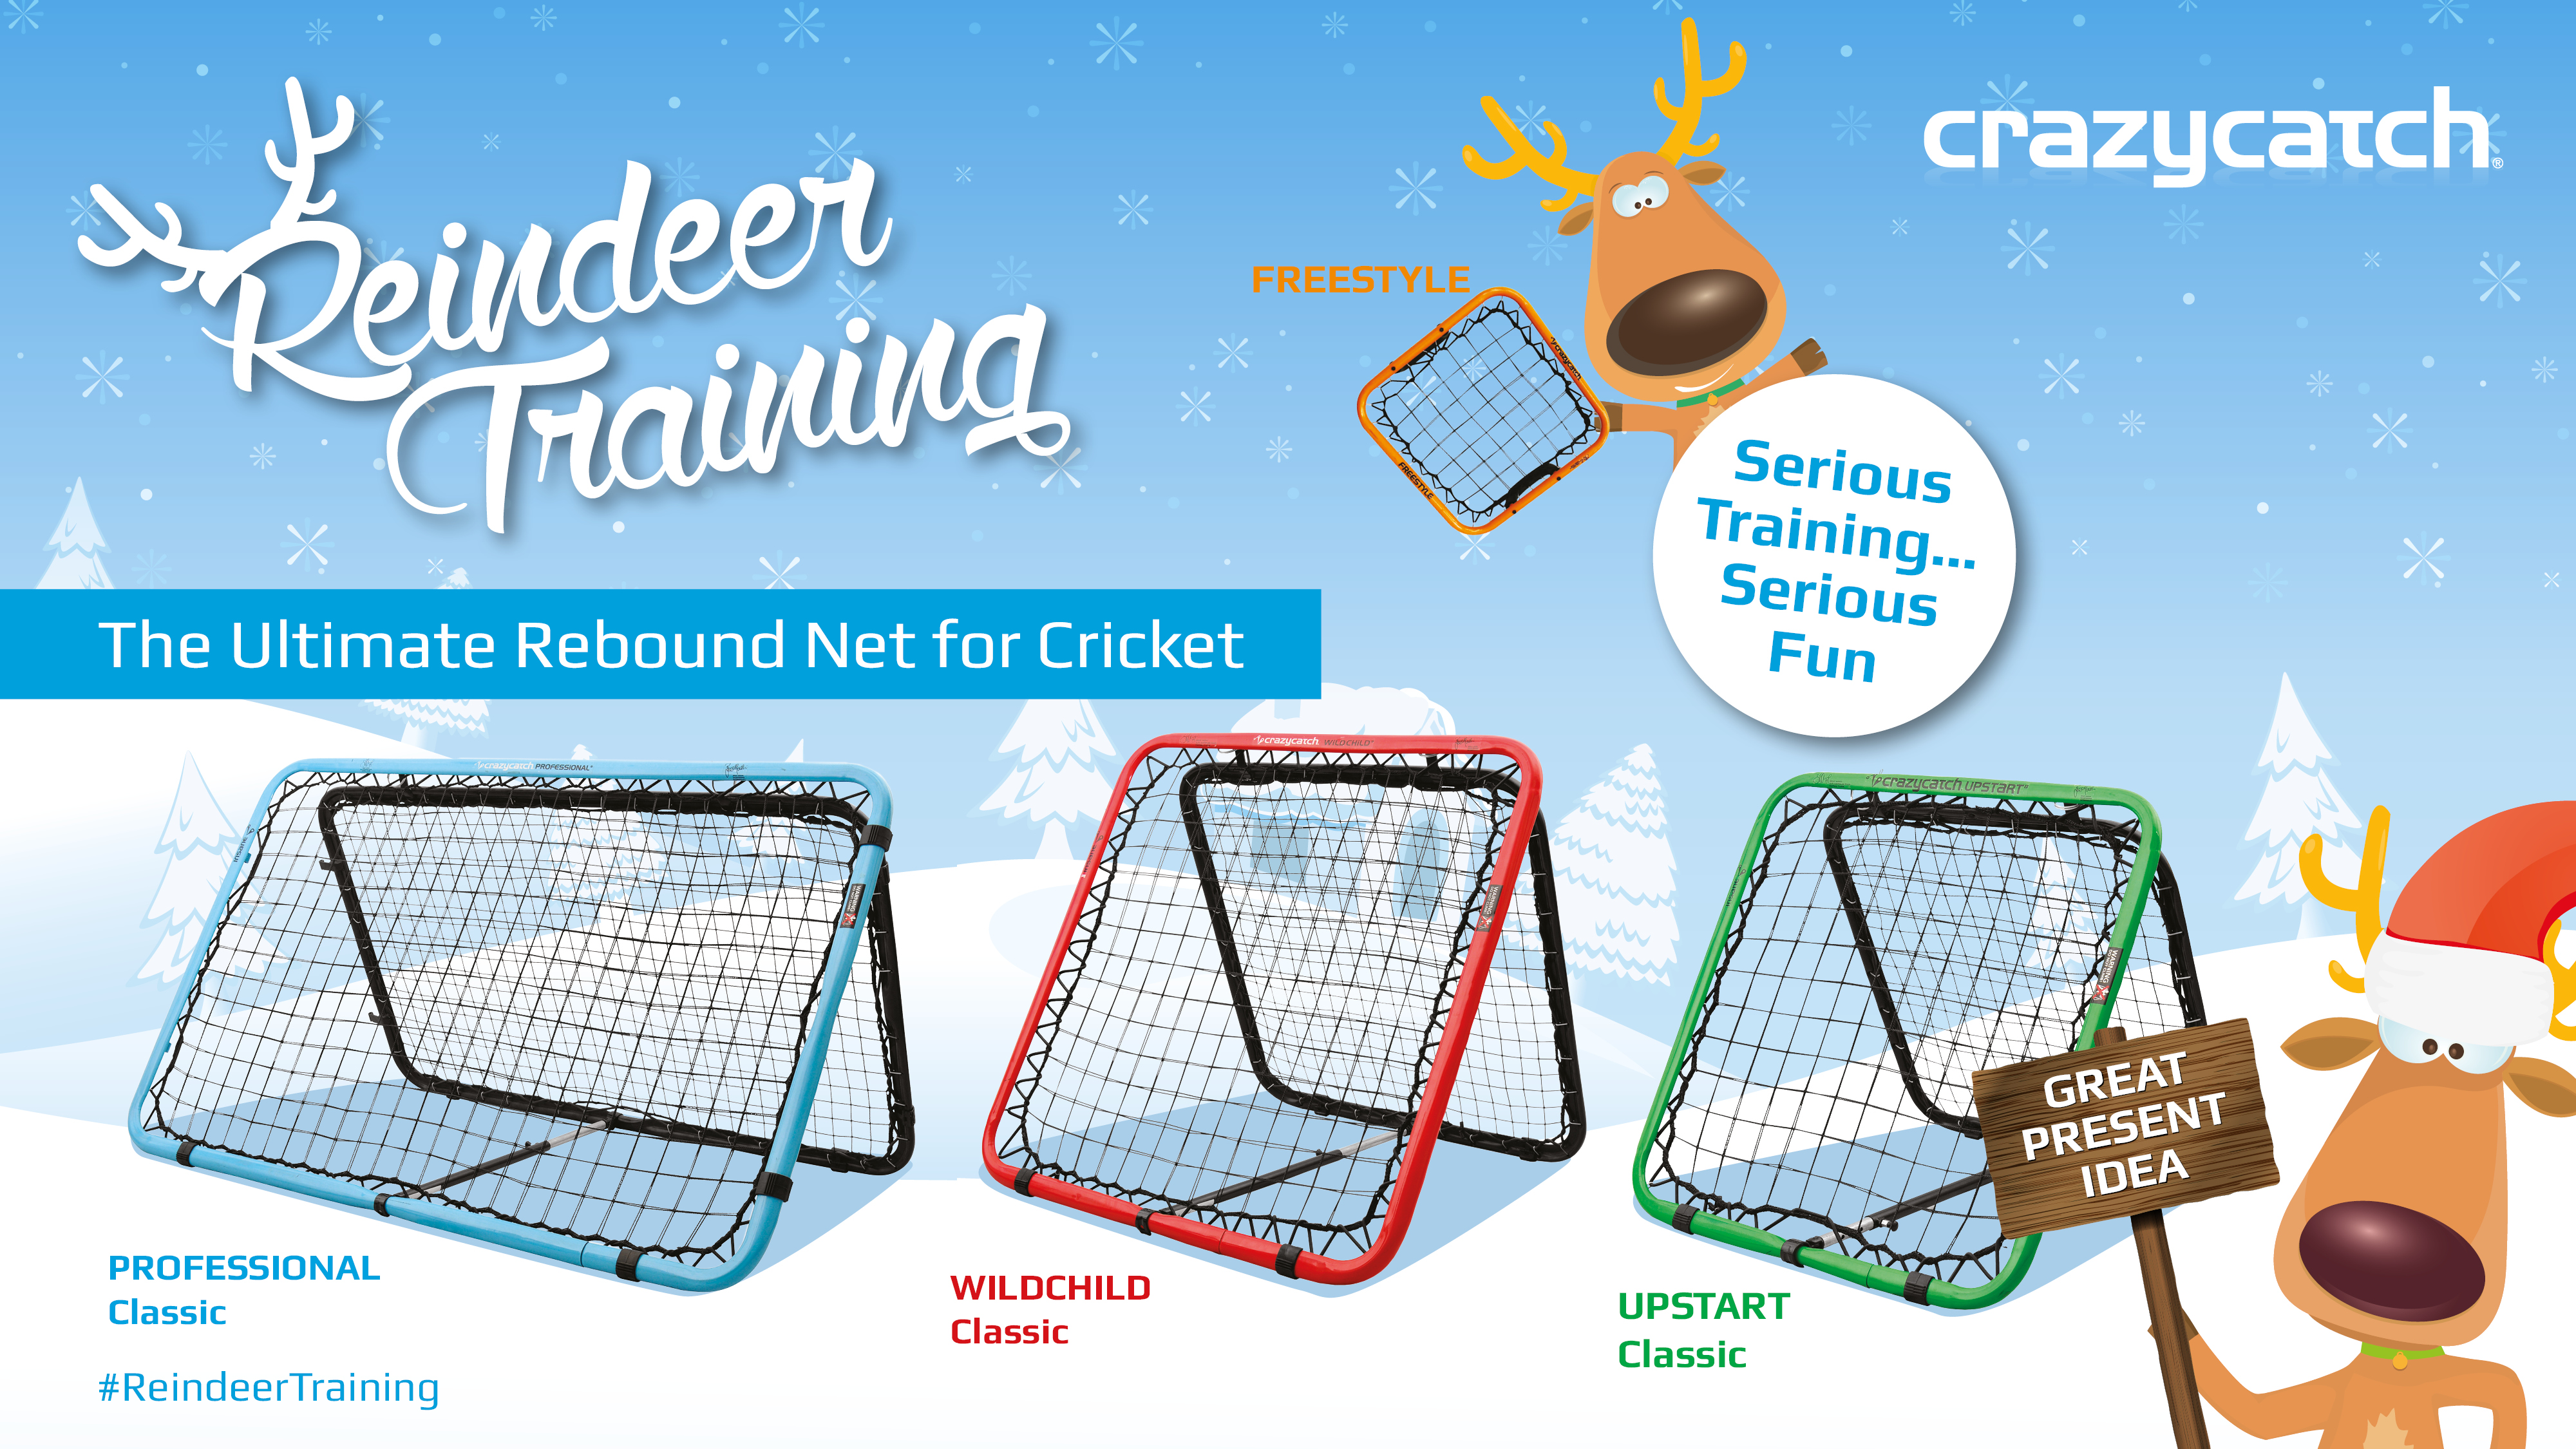 The Crazy Catch Classic range for Cricket